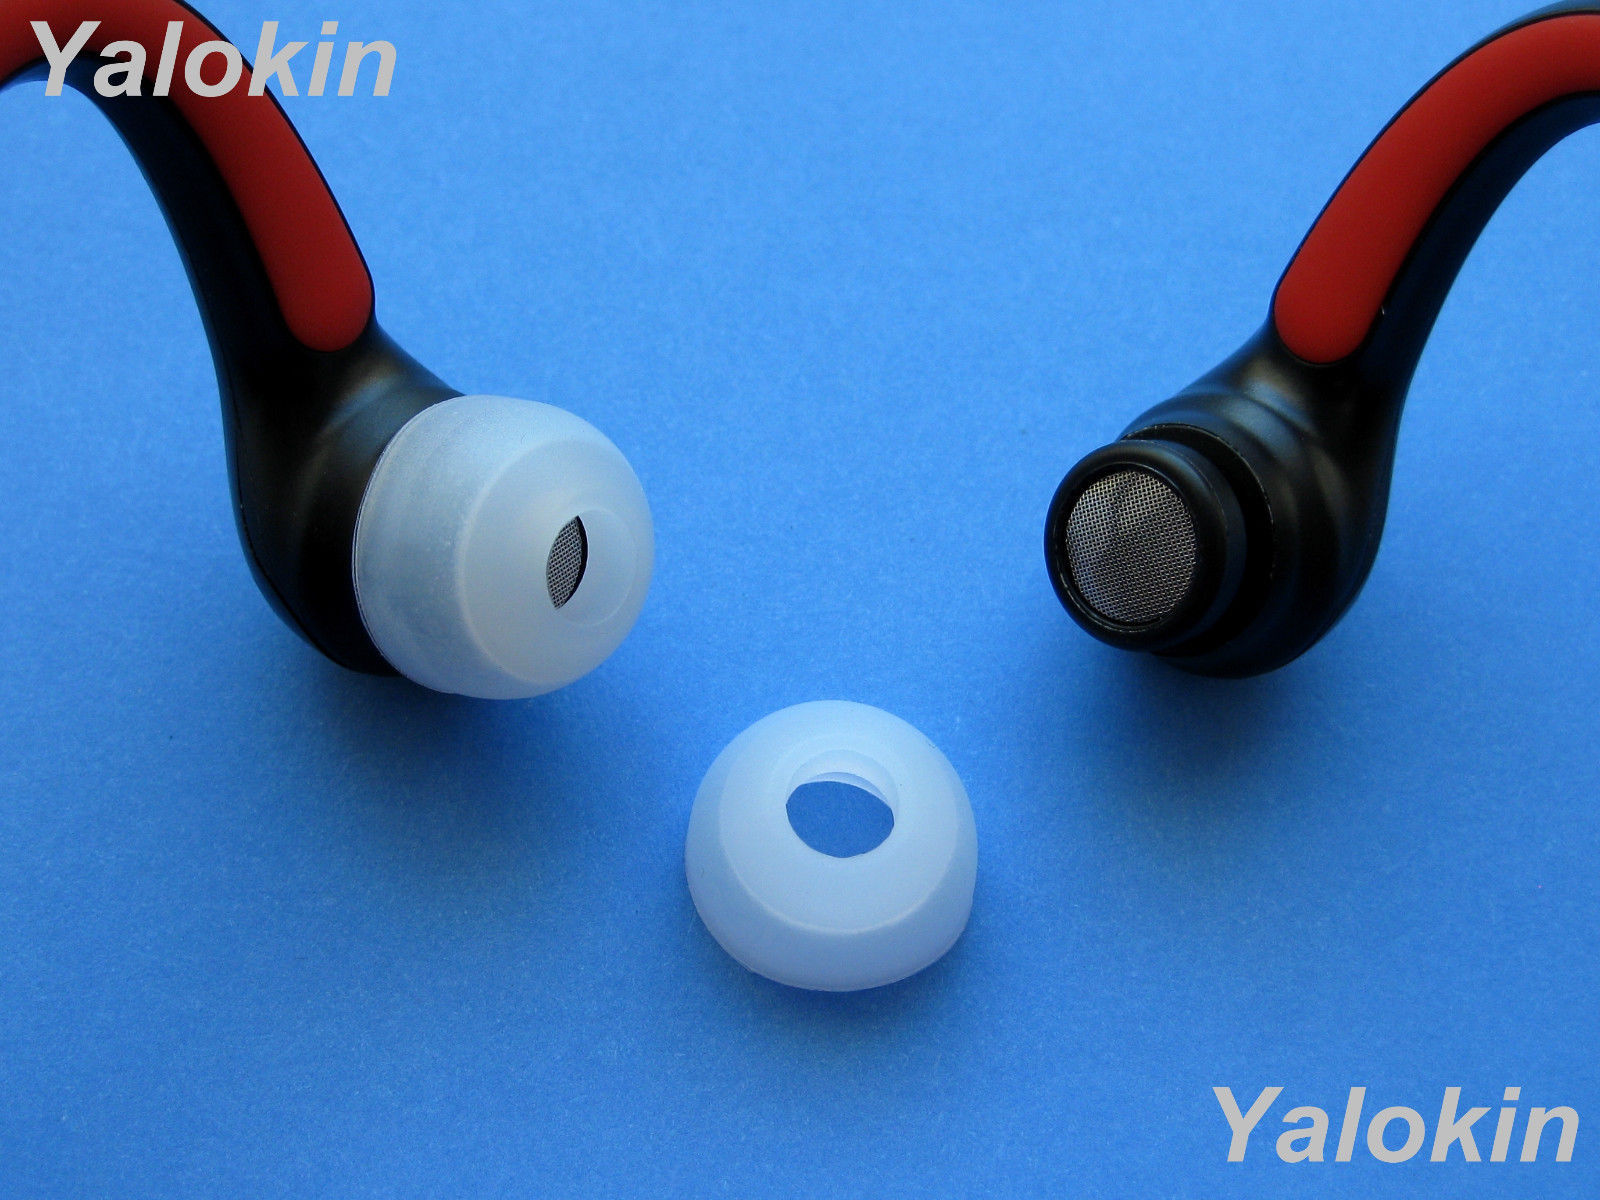 8 CL Large Replacement Ear-buds Eartips for Motorola S10-HD Bluetooth Headphones